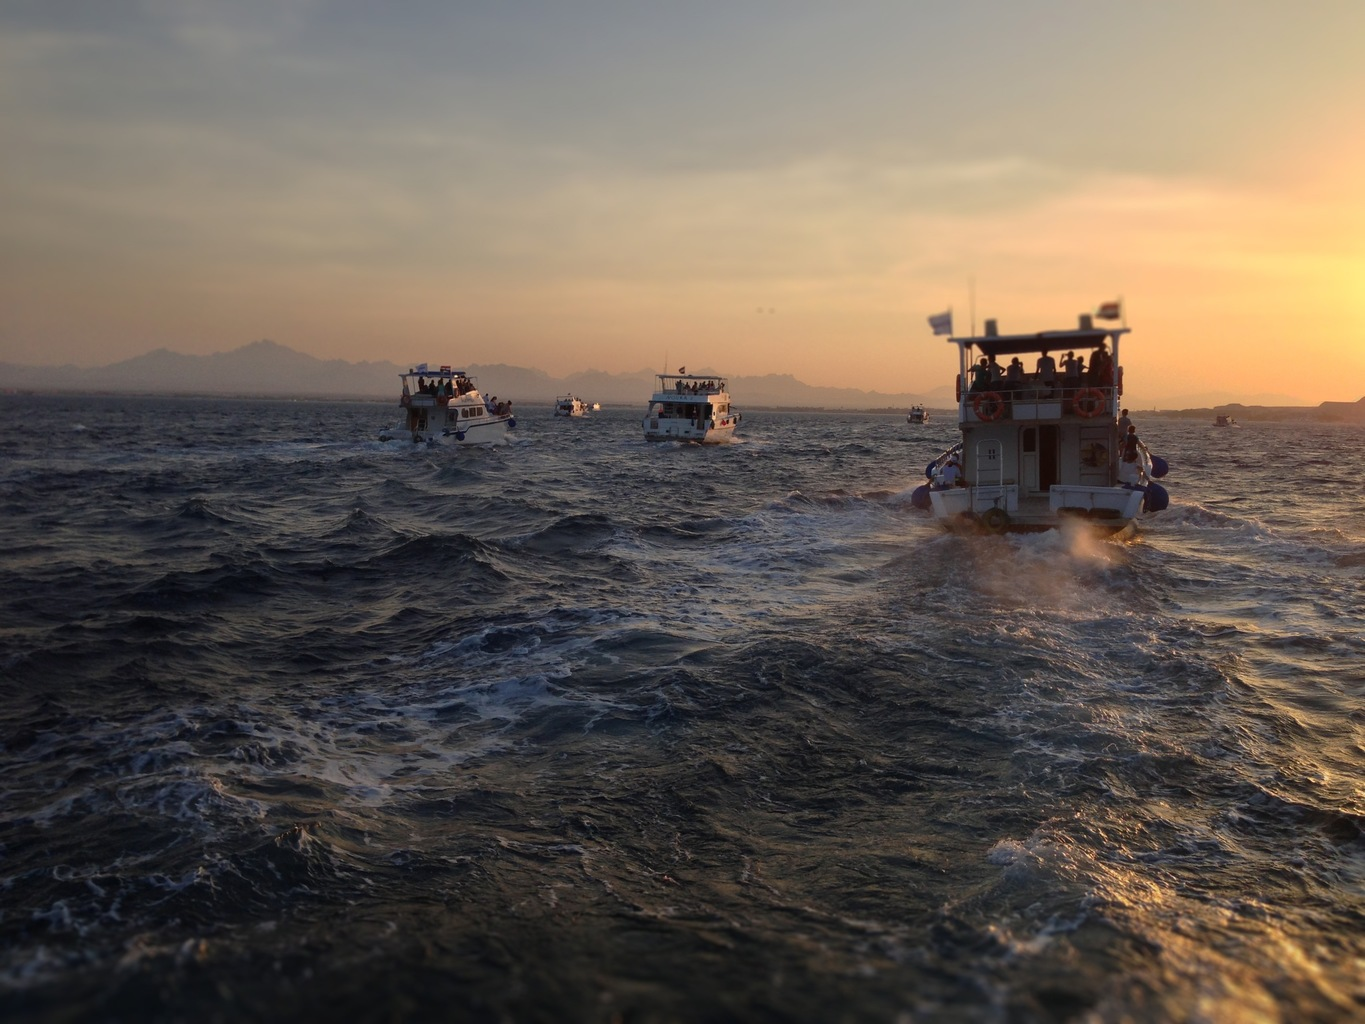 The power of markets in the global North to transform labor practices in regions such as the Greater Mekong Subregion and West Africa is due to the seafood industry's supply and demand dynamic.